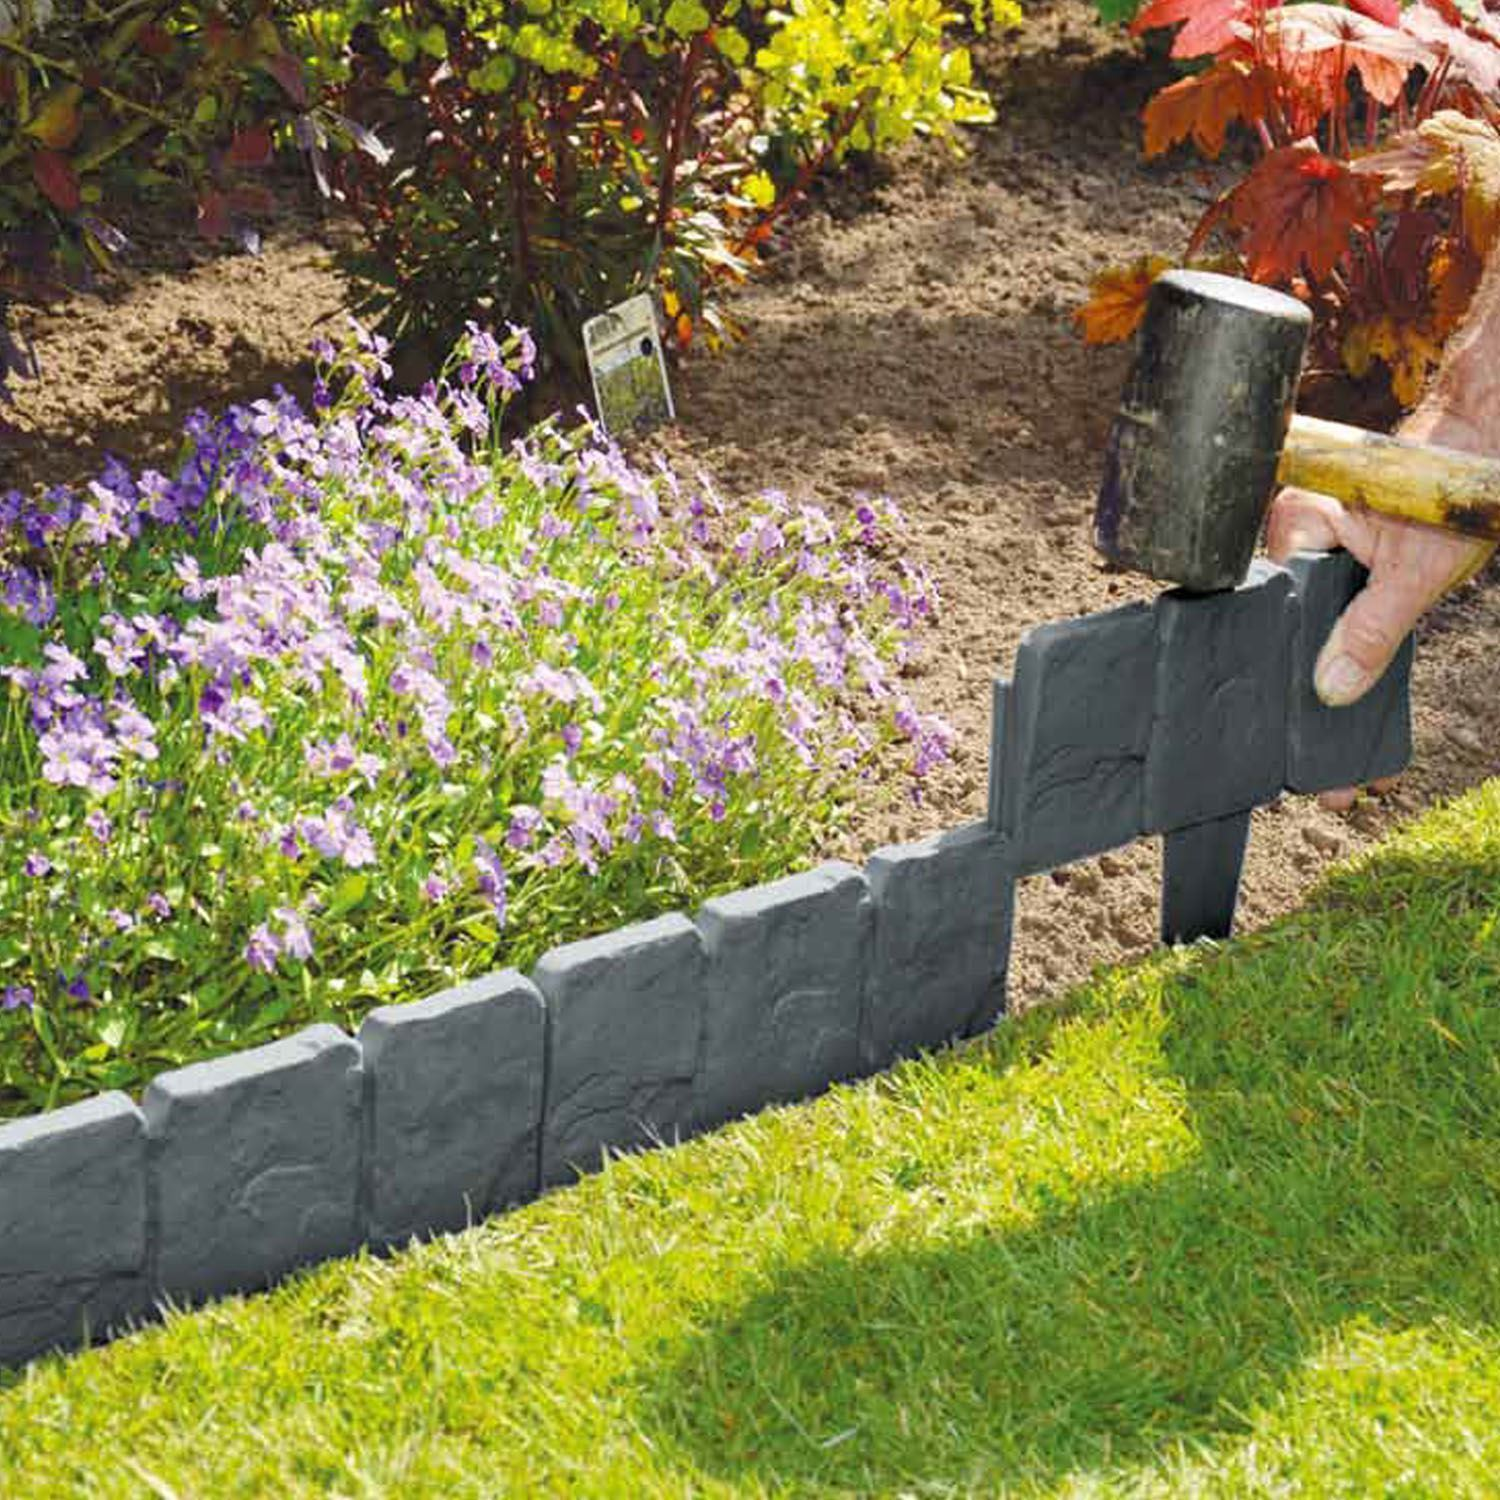 10 pack lawn edging cobbled stone effect plastic garden edging hammer in KISNYXR